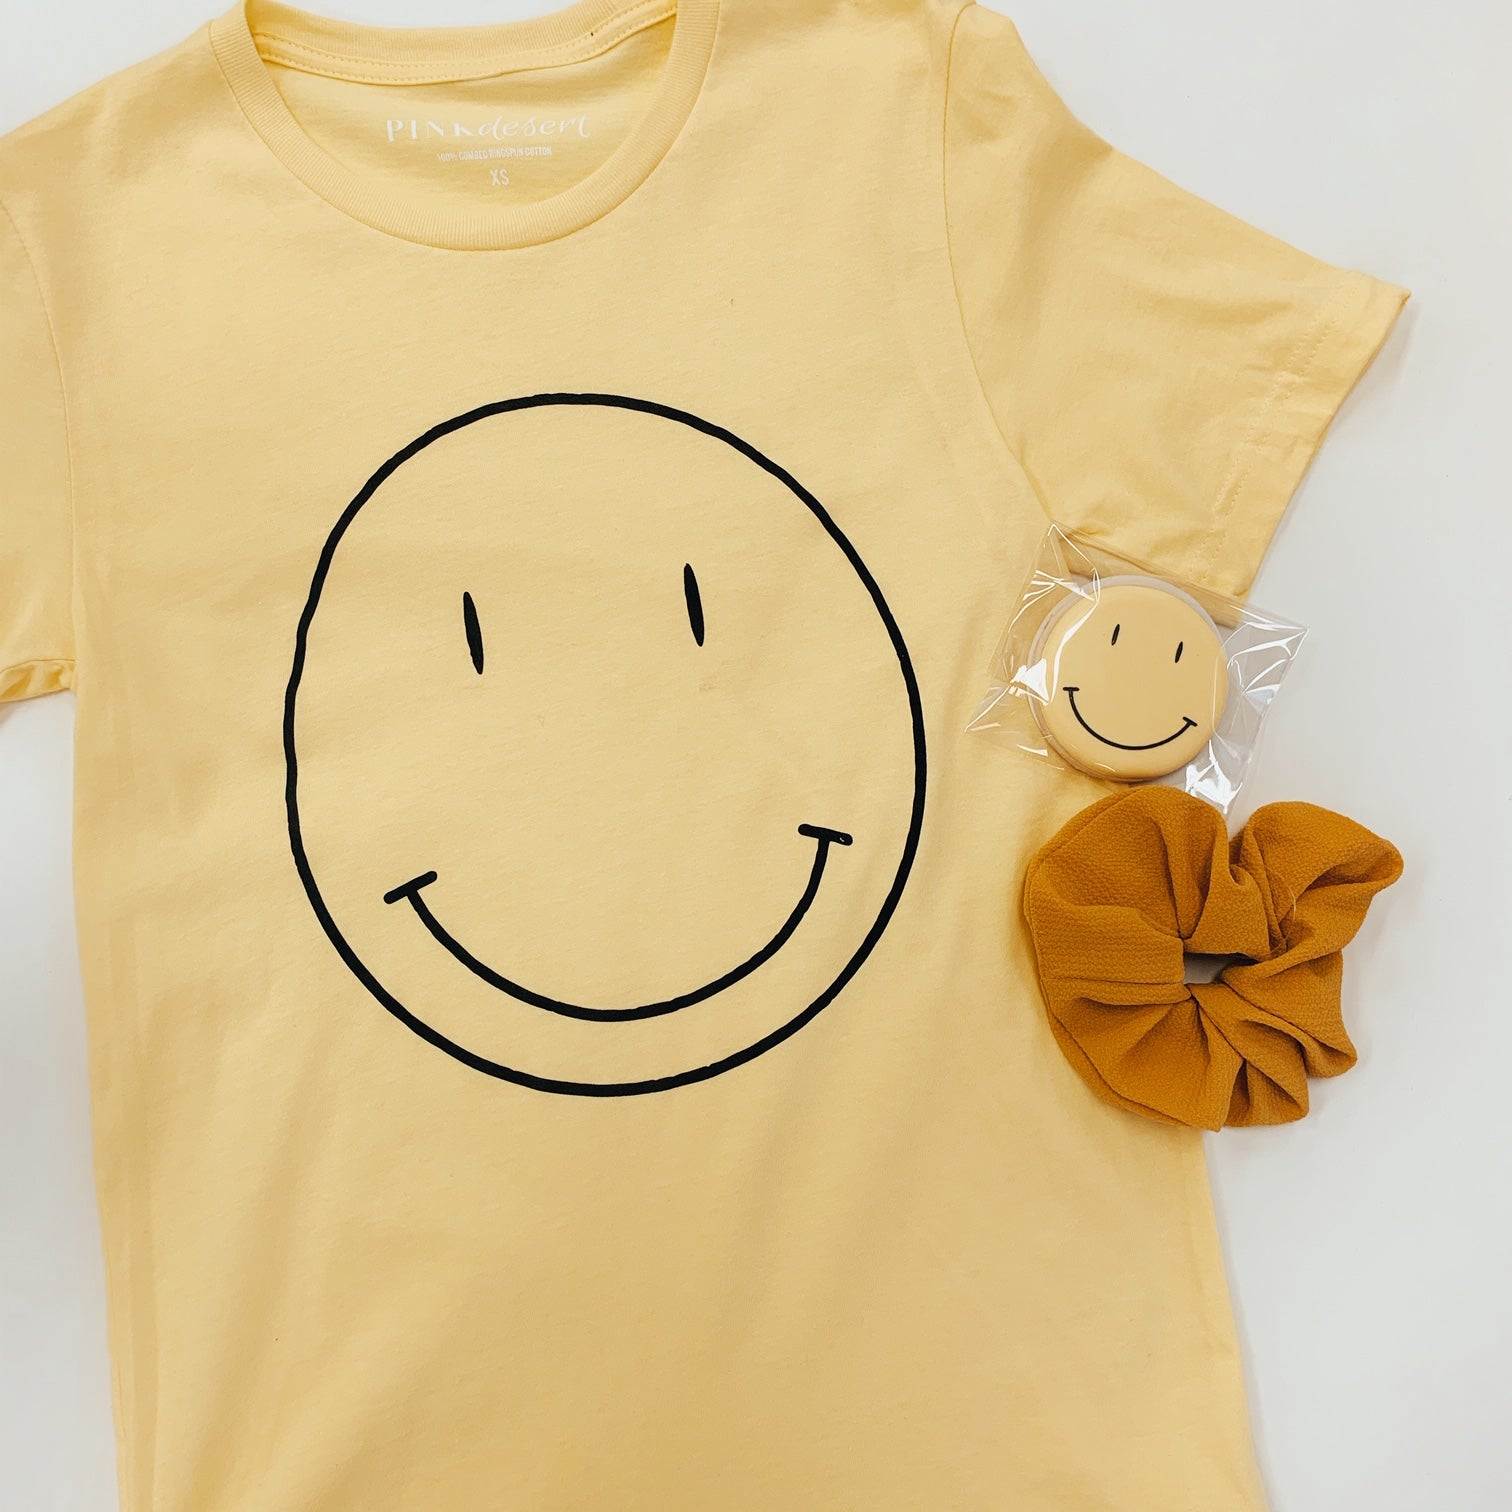 THE SMILEY FACE GRAPHIC TEE BY PINK DESERT